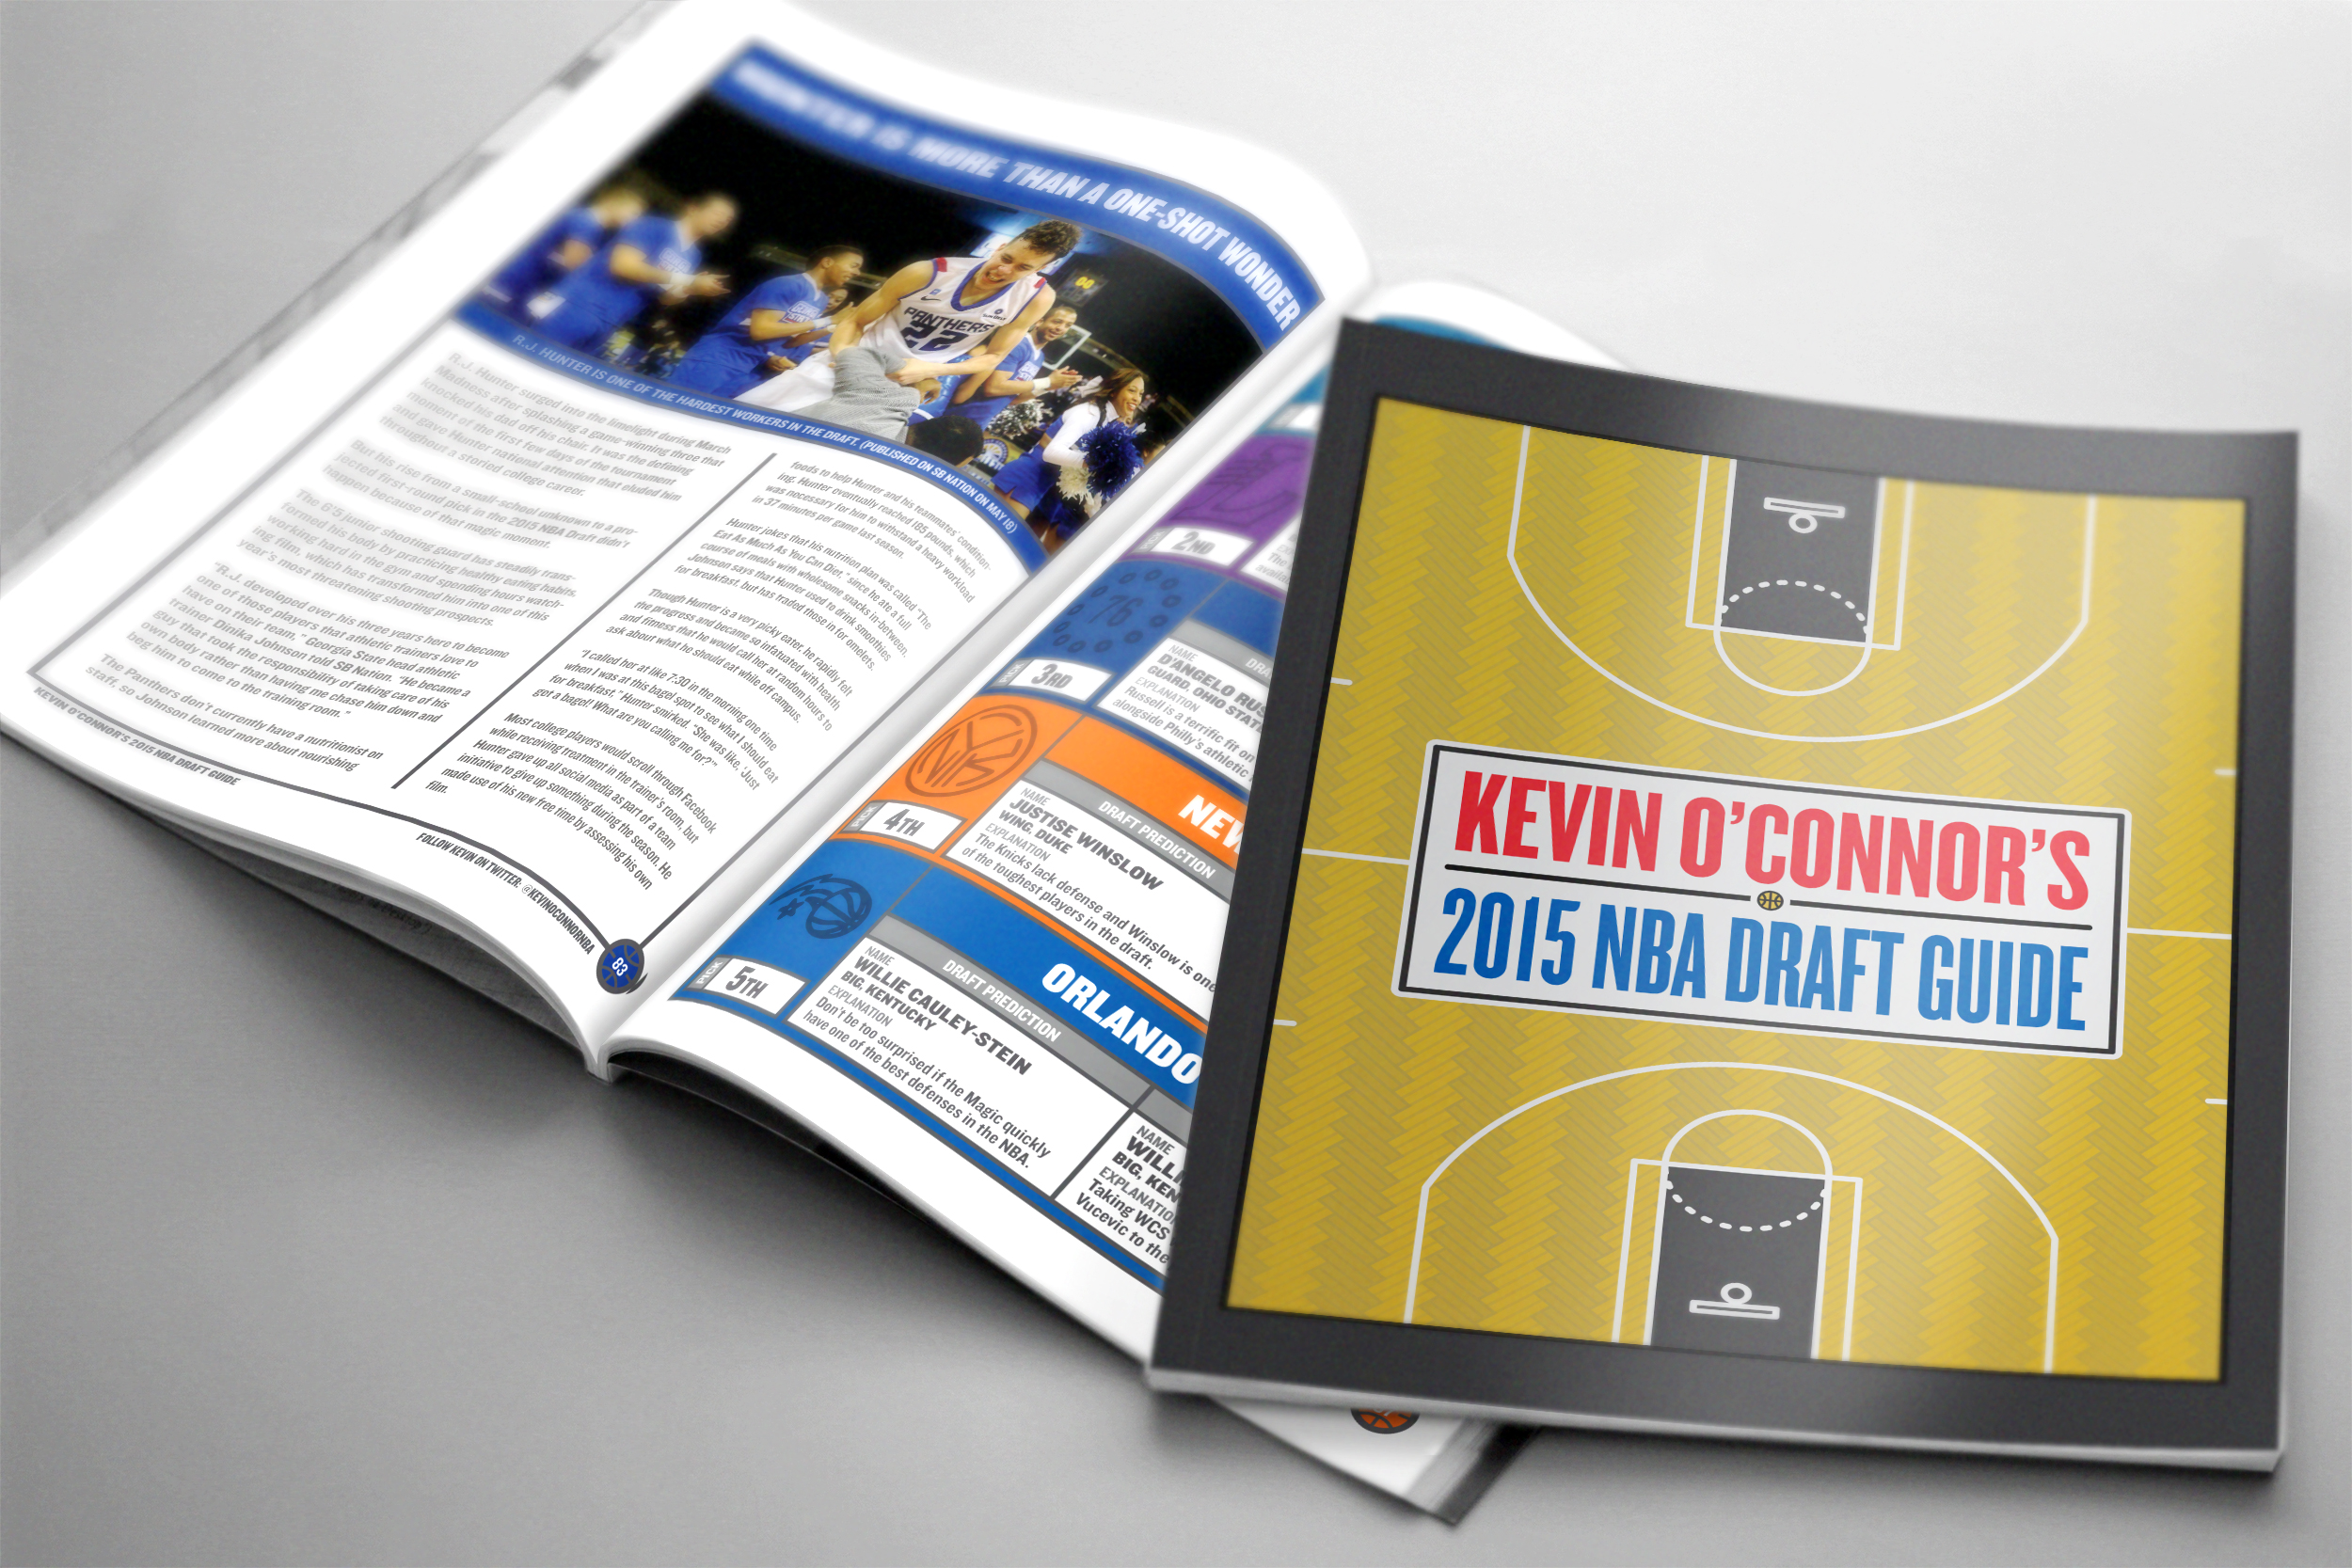 Cover design with an illustration of The Barclays Center, which hosted the 2015 NBA Draft.